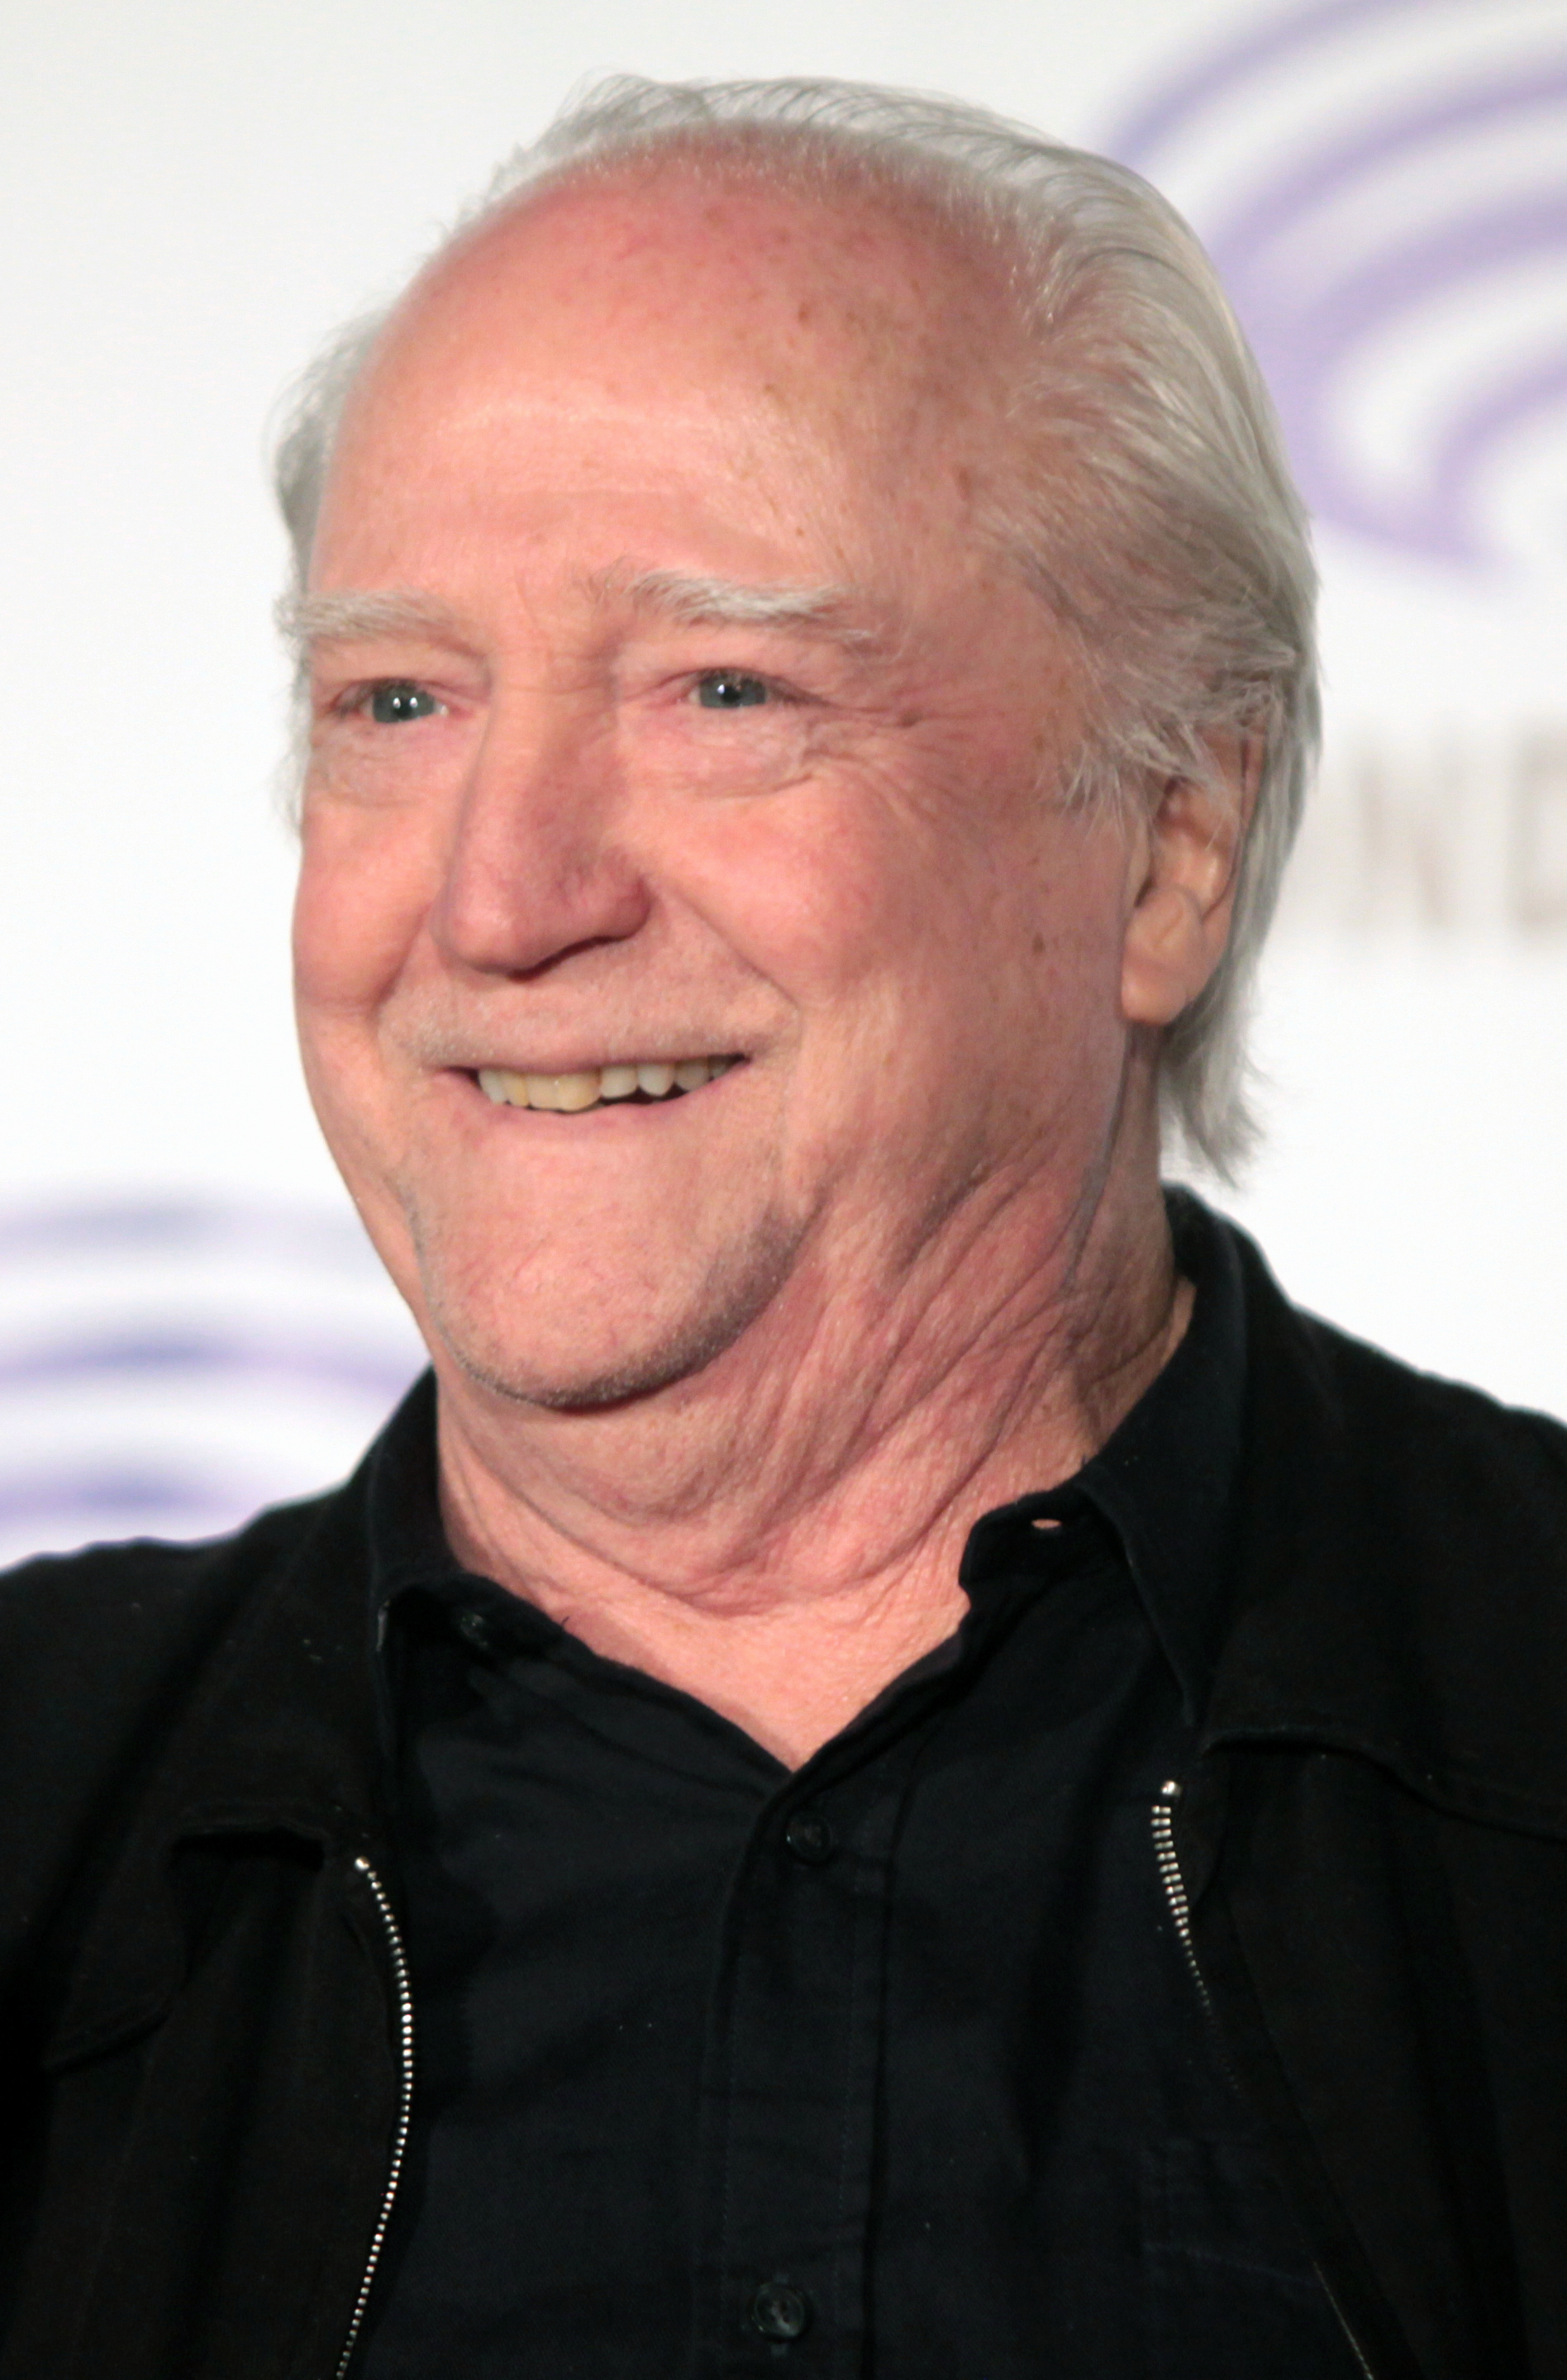 The 76-year old son of father Thomas Wilson and mother Jewel Wilson Scott Wilson in 2018 photo. Scott Wilson earned a  million dollar salary - leaving the net worth at 2 million in 2018